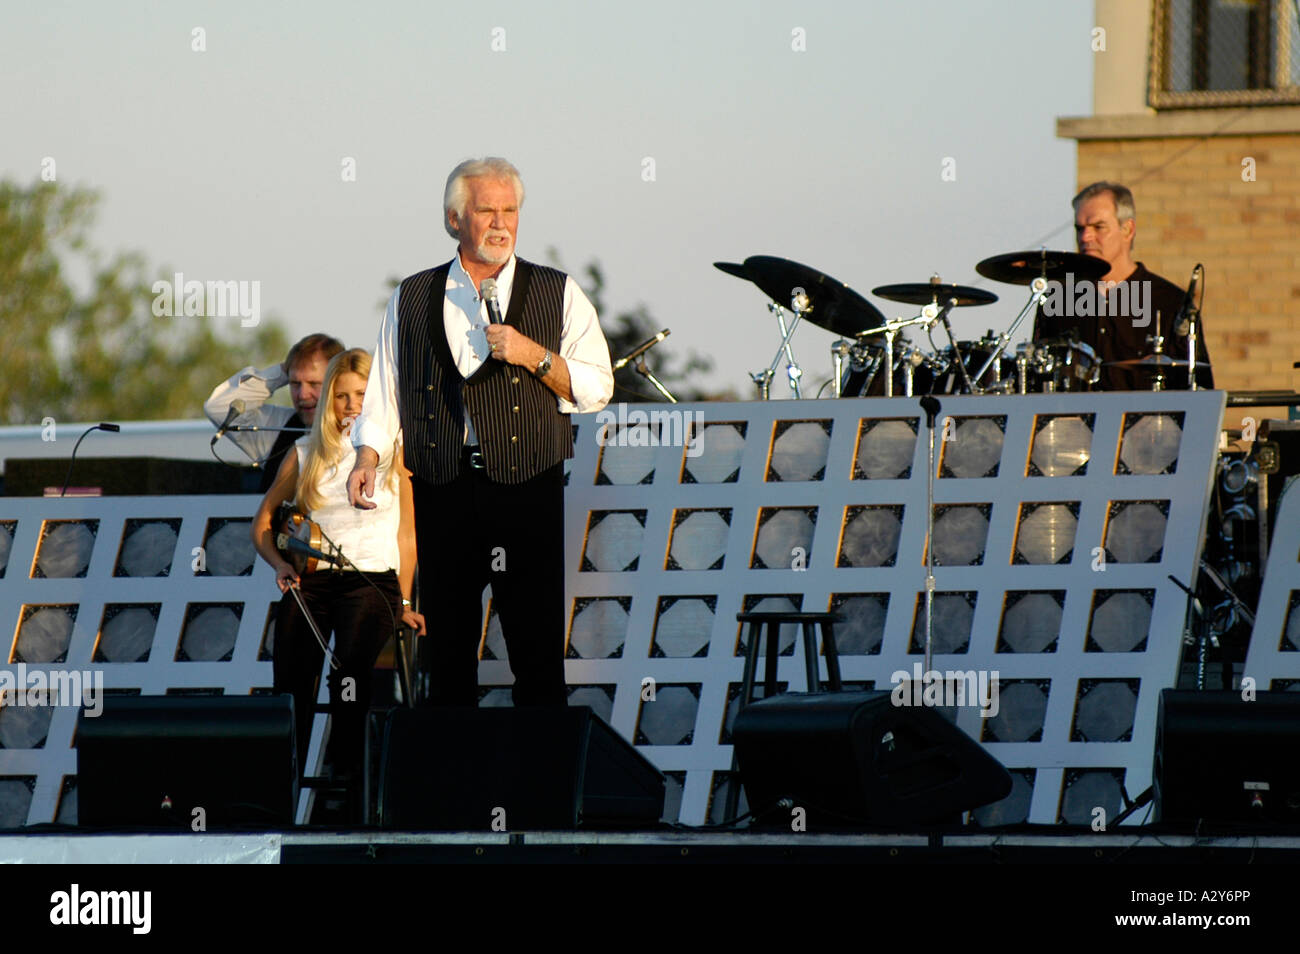 Kenny Rogers sings at a outdoor concert in Port Huron Michigan - Stock Image